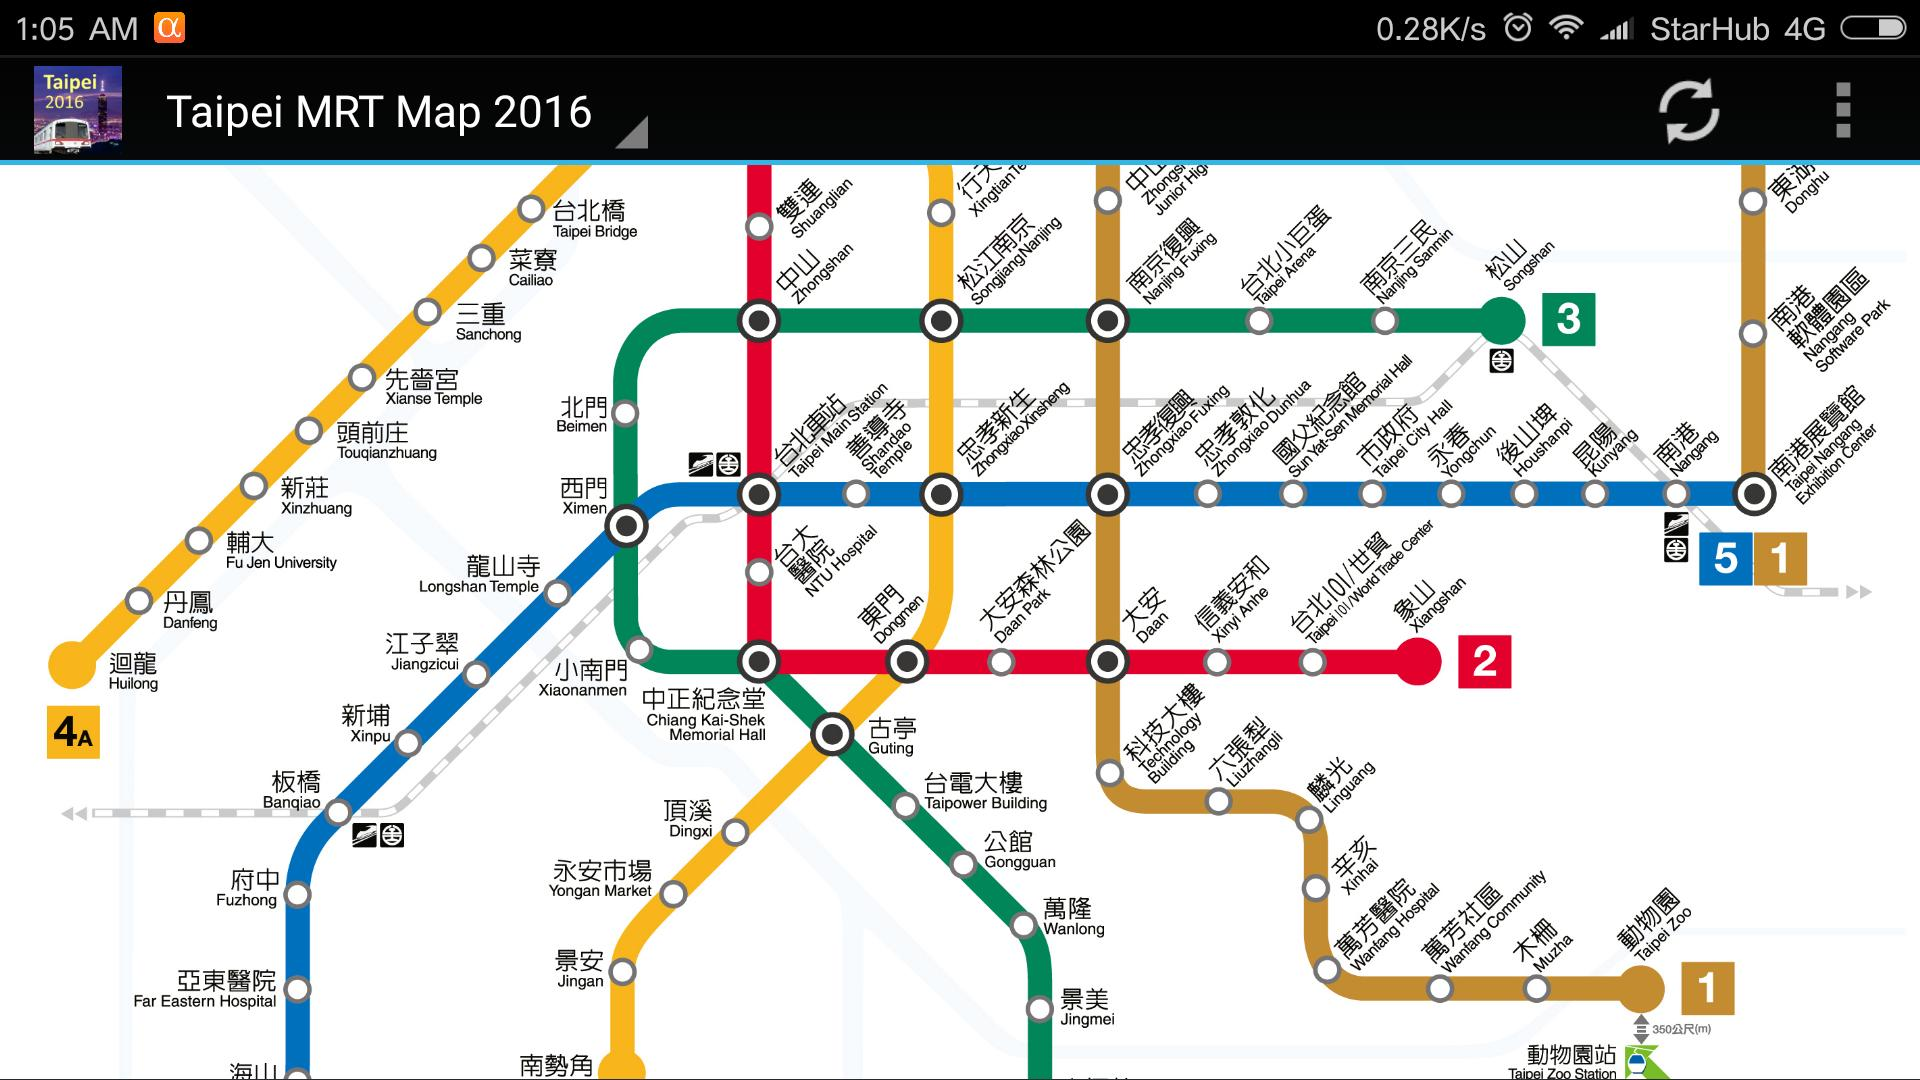 Taipei MRT Map 2019 for Android - APK Download